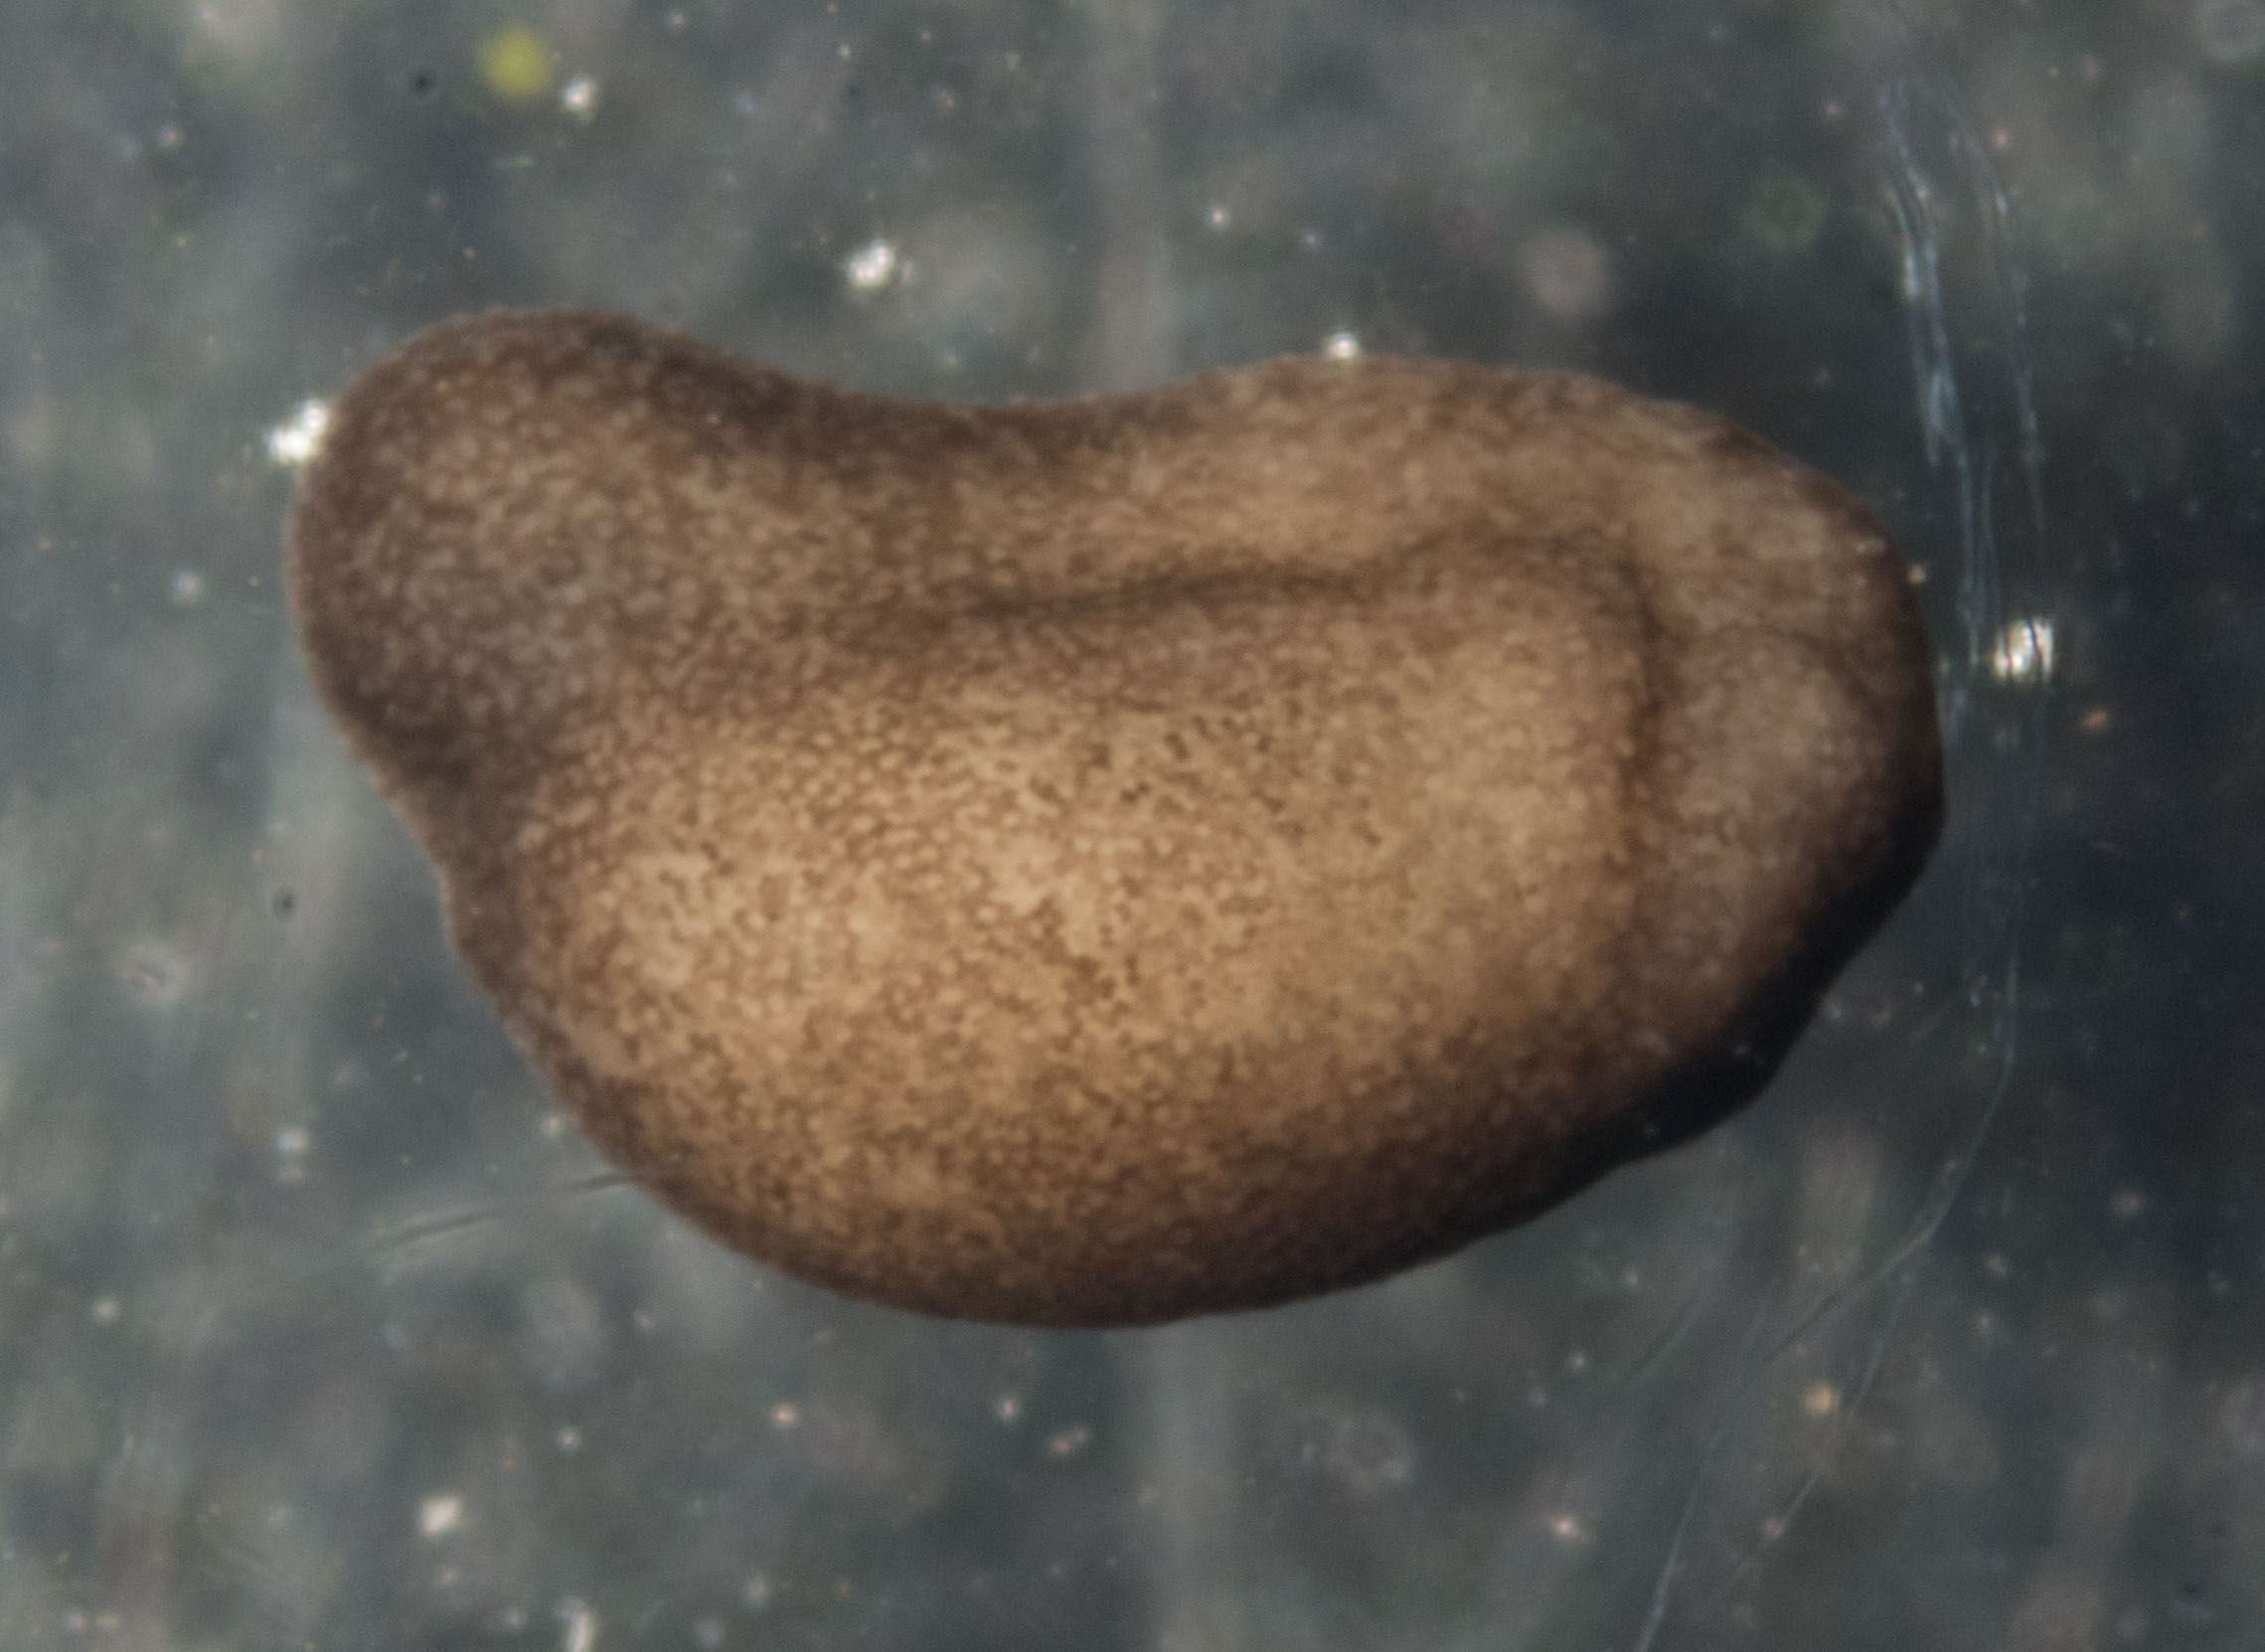 This is a tailbud stage embryo. The bulge on the left is the developing tail. While the embryo looks quite formless, it already possesses early versions of most of the internal organs.